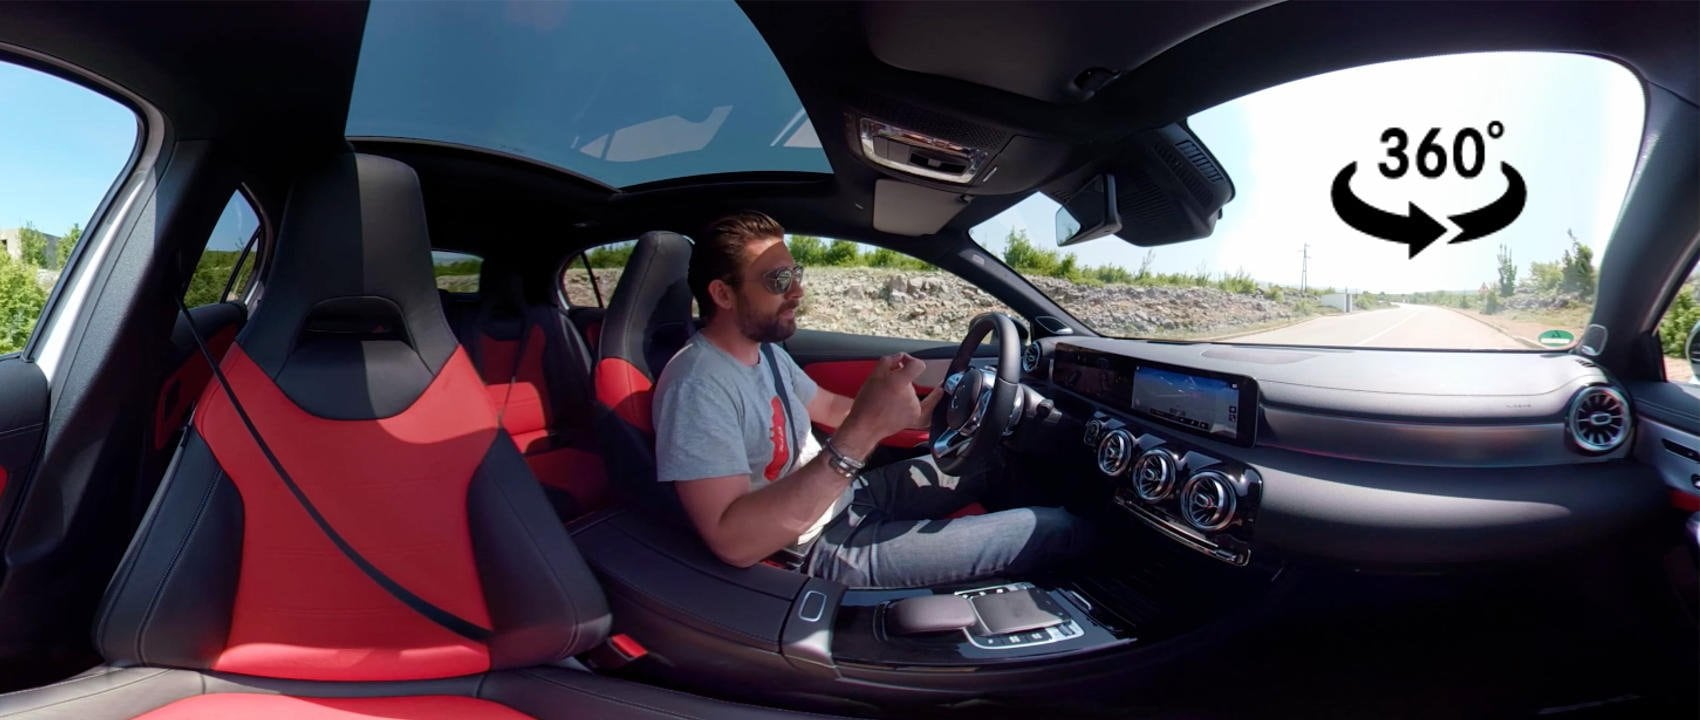 Take a 360° ride in the new Mercedes-Benz A-Class. YouTuber MrJWW introduces the compact car.